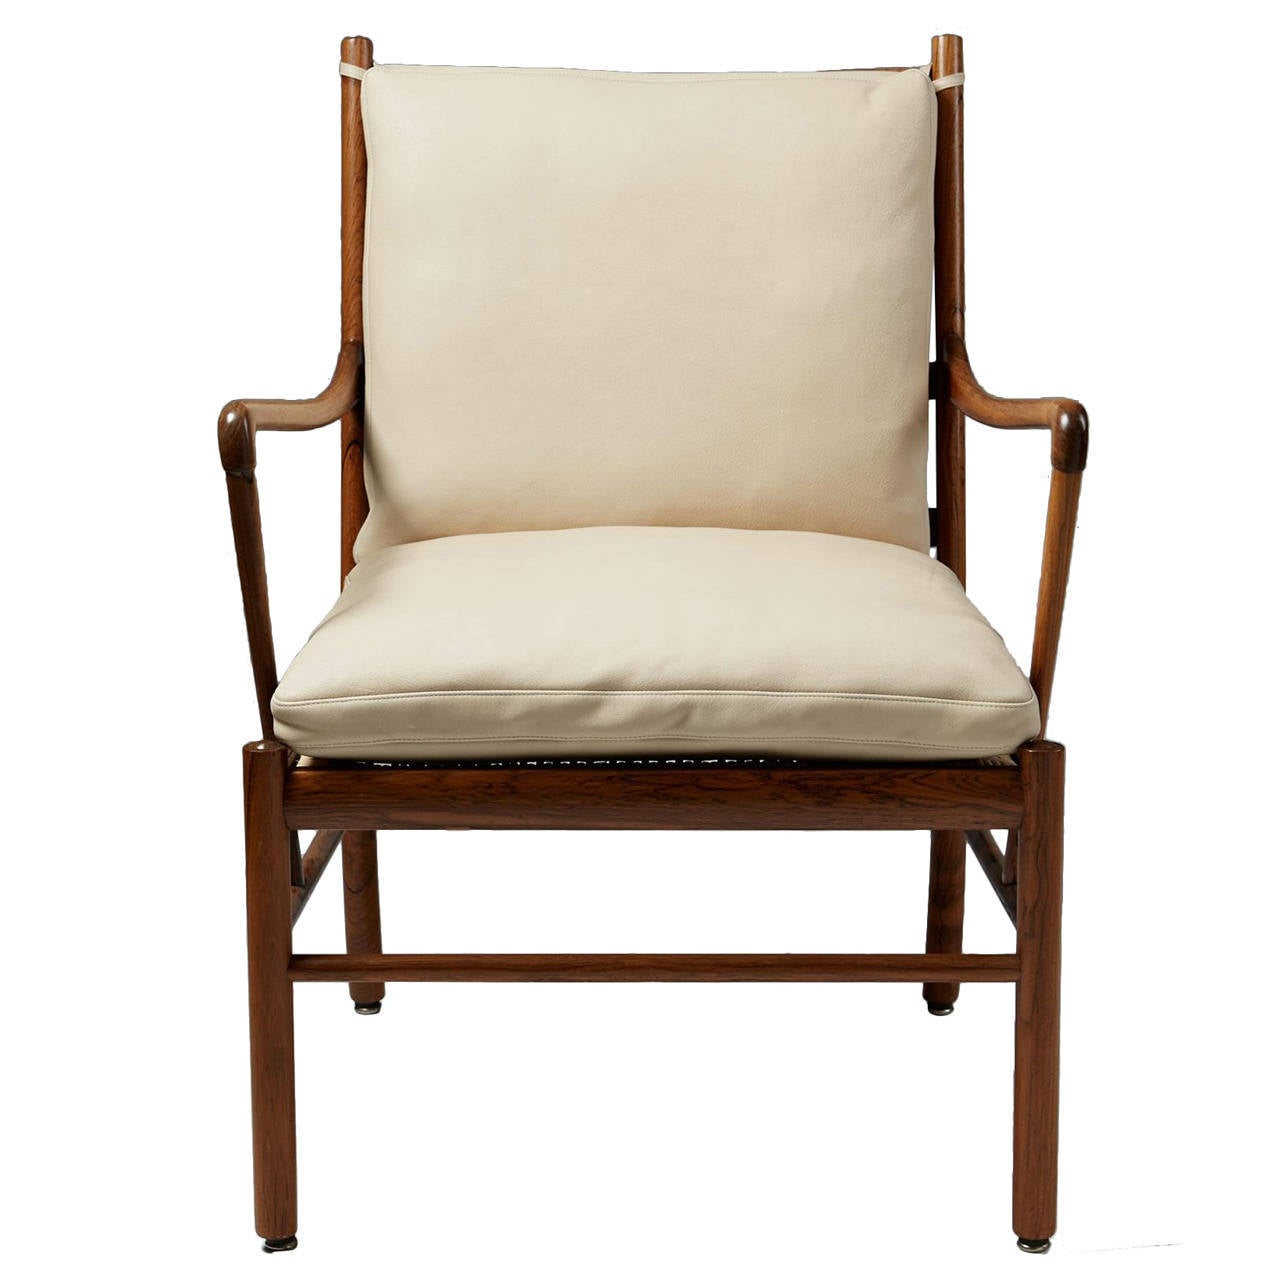 Armchair colonial designed by ole wanscher for p jeppesen for P jeppesen furniture